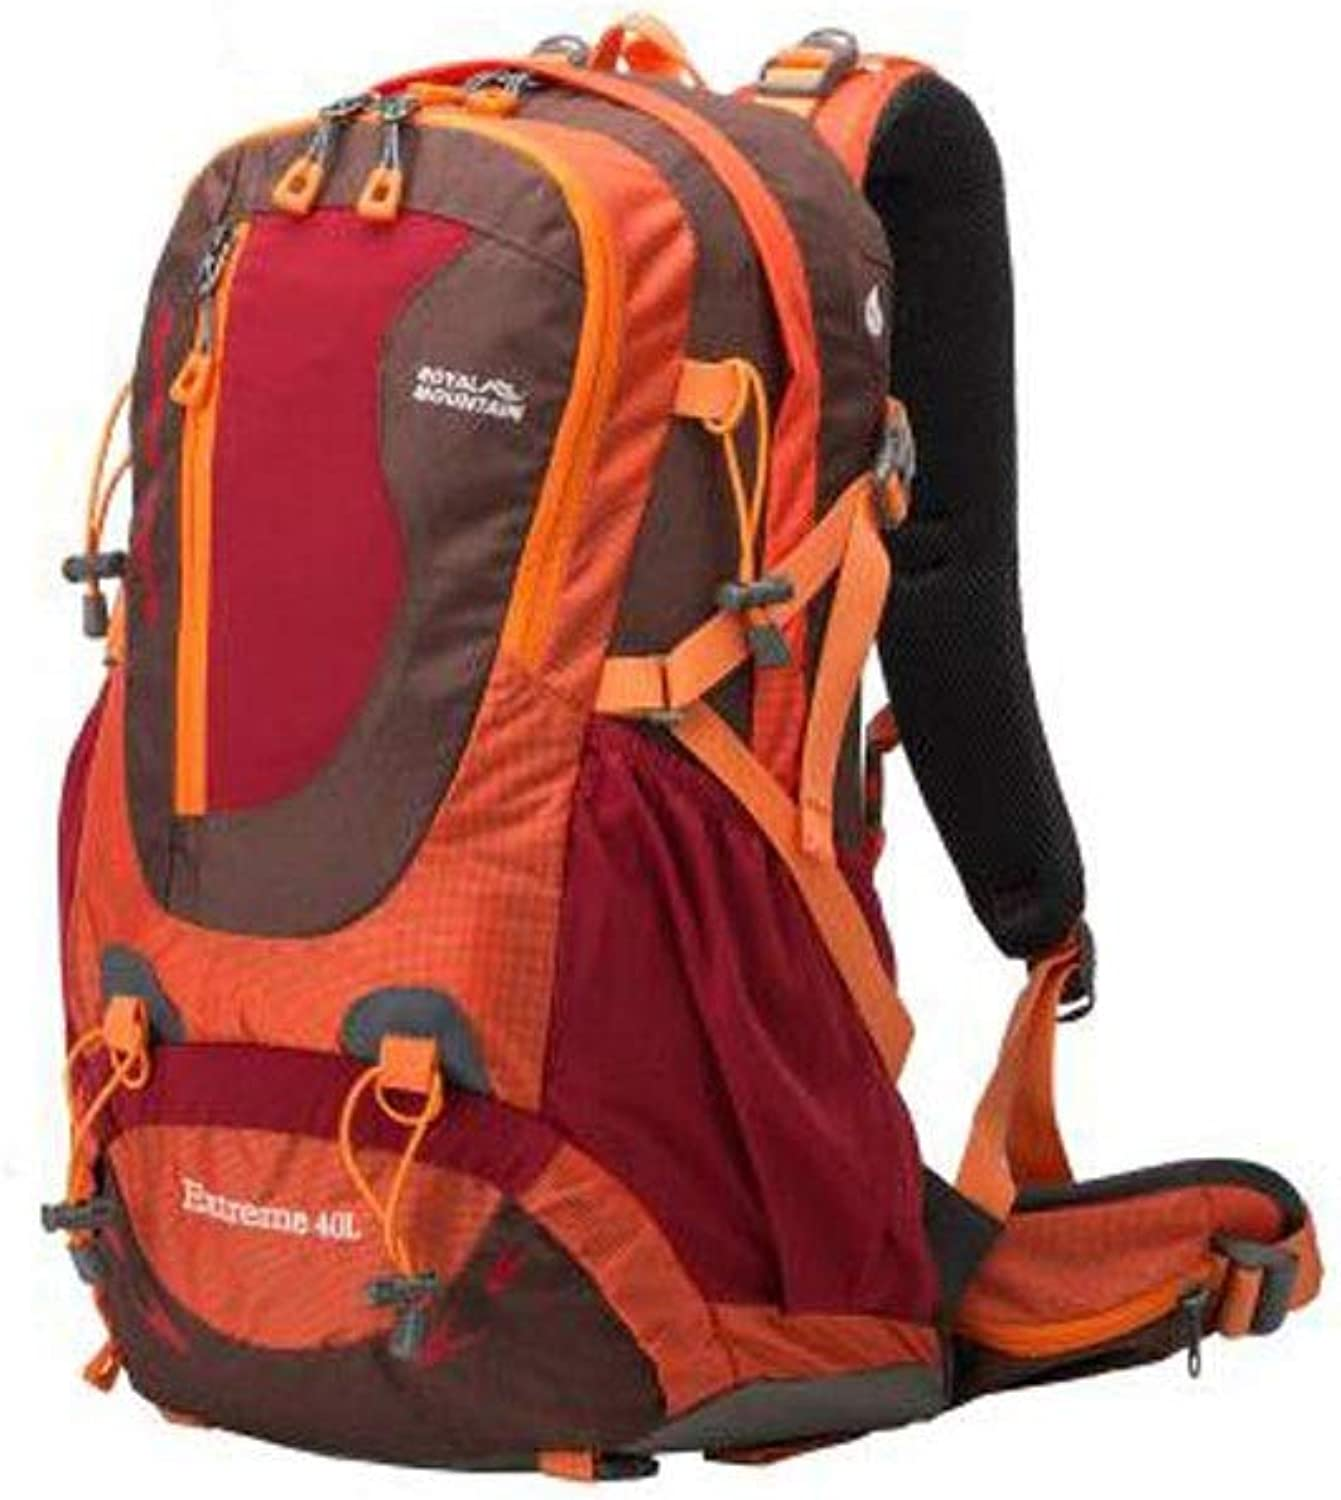 HENG Outdoor 40L Mountaineering Bag, Casual Nylon Fabric Water Repellent Travel & Hiking Backpack for Hiking, Traveling & Camping (color   orange)